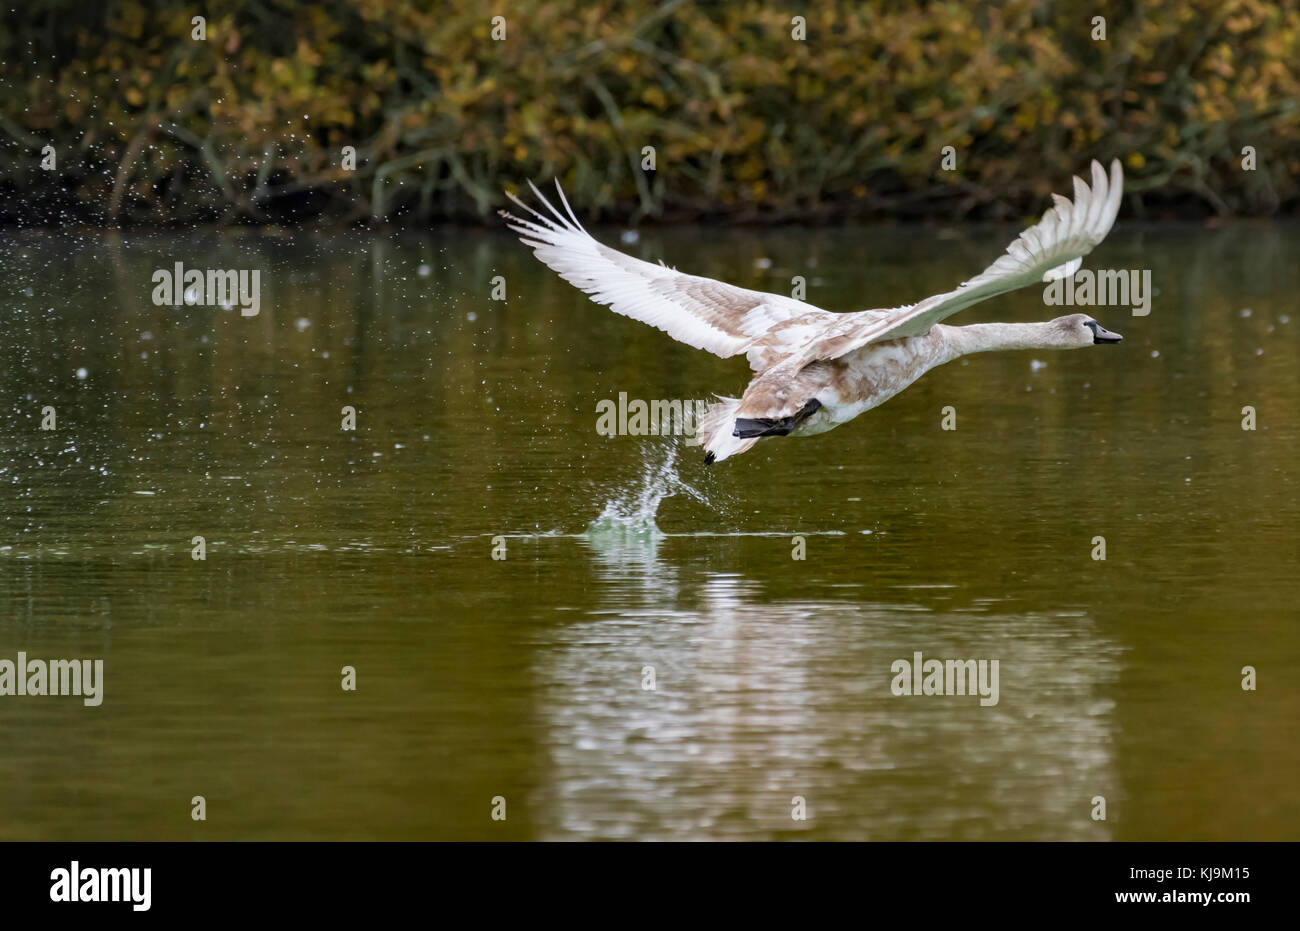 Swan Cygnet (Cygnus olor) taking off from a lake in Autumn in West Sussex, England, UK. - Stock Image